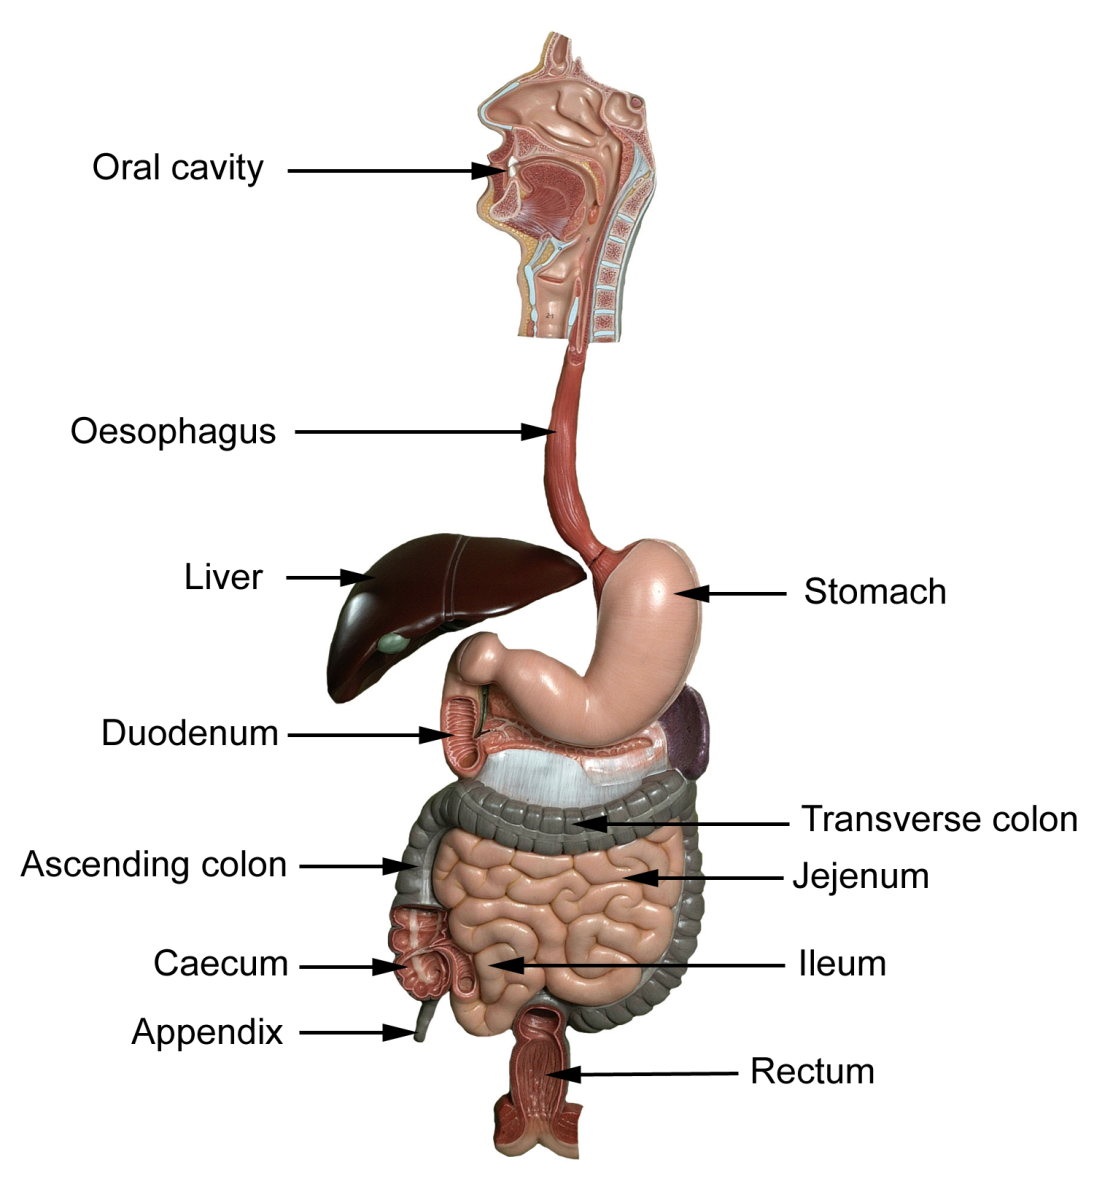 The alimentary tract!